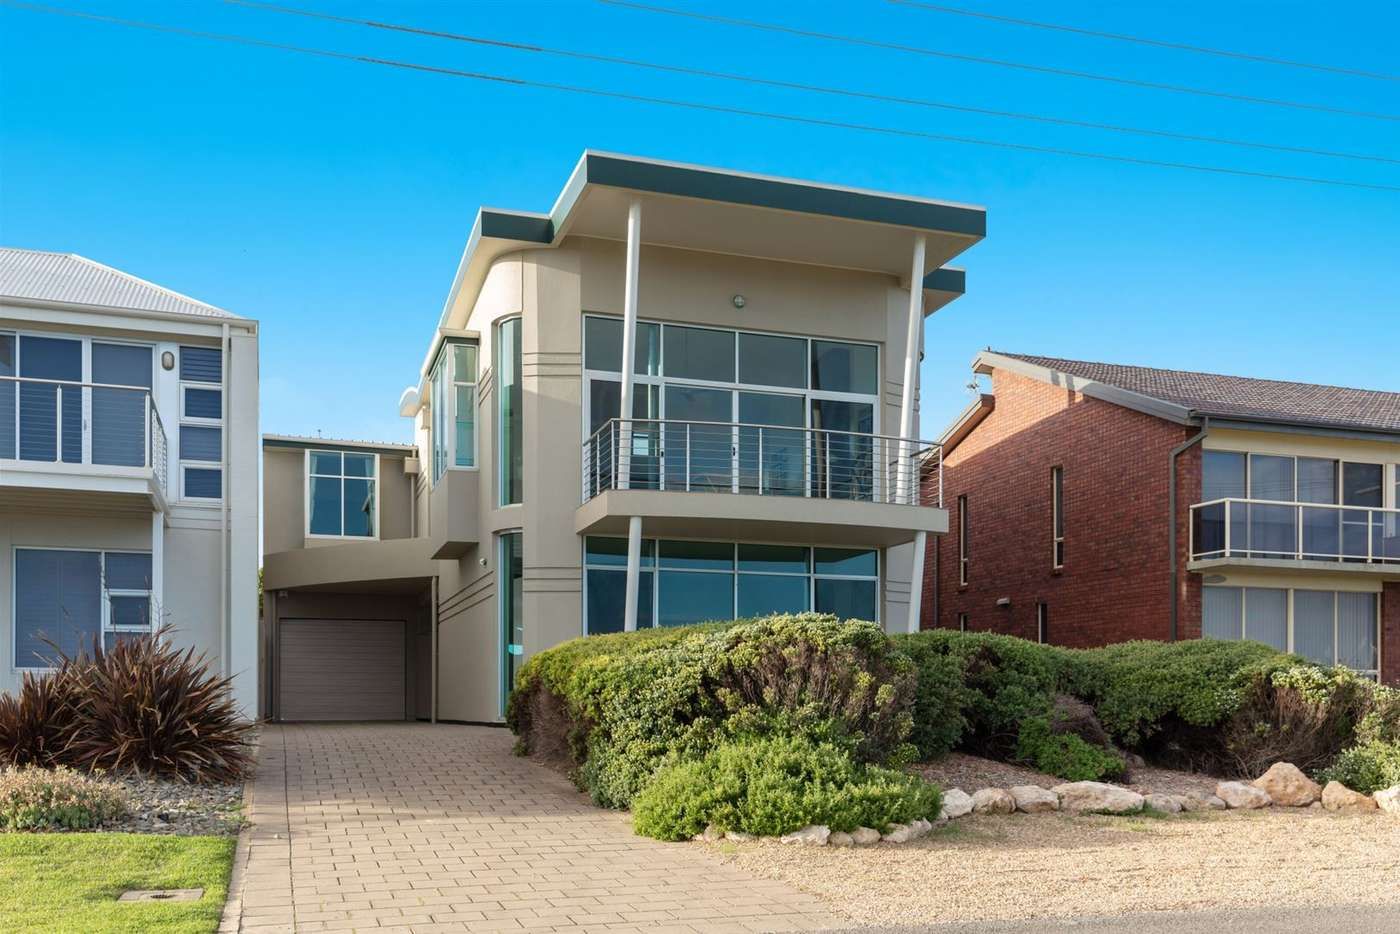 Main view of Homely house listing, 44 Ocean Road, Port Elliot SA 5212